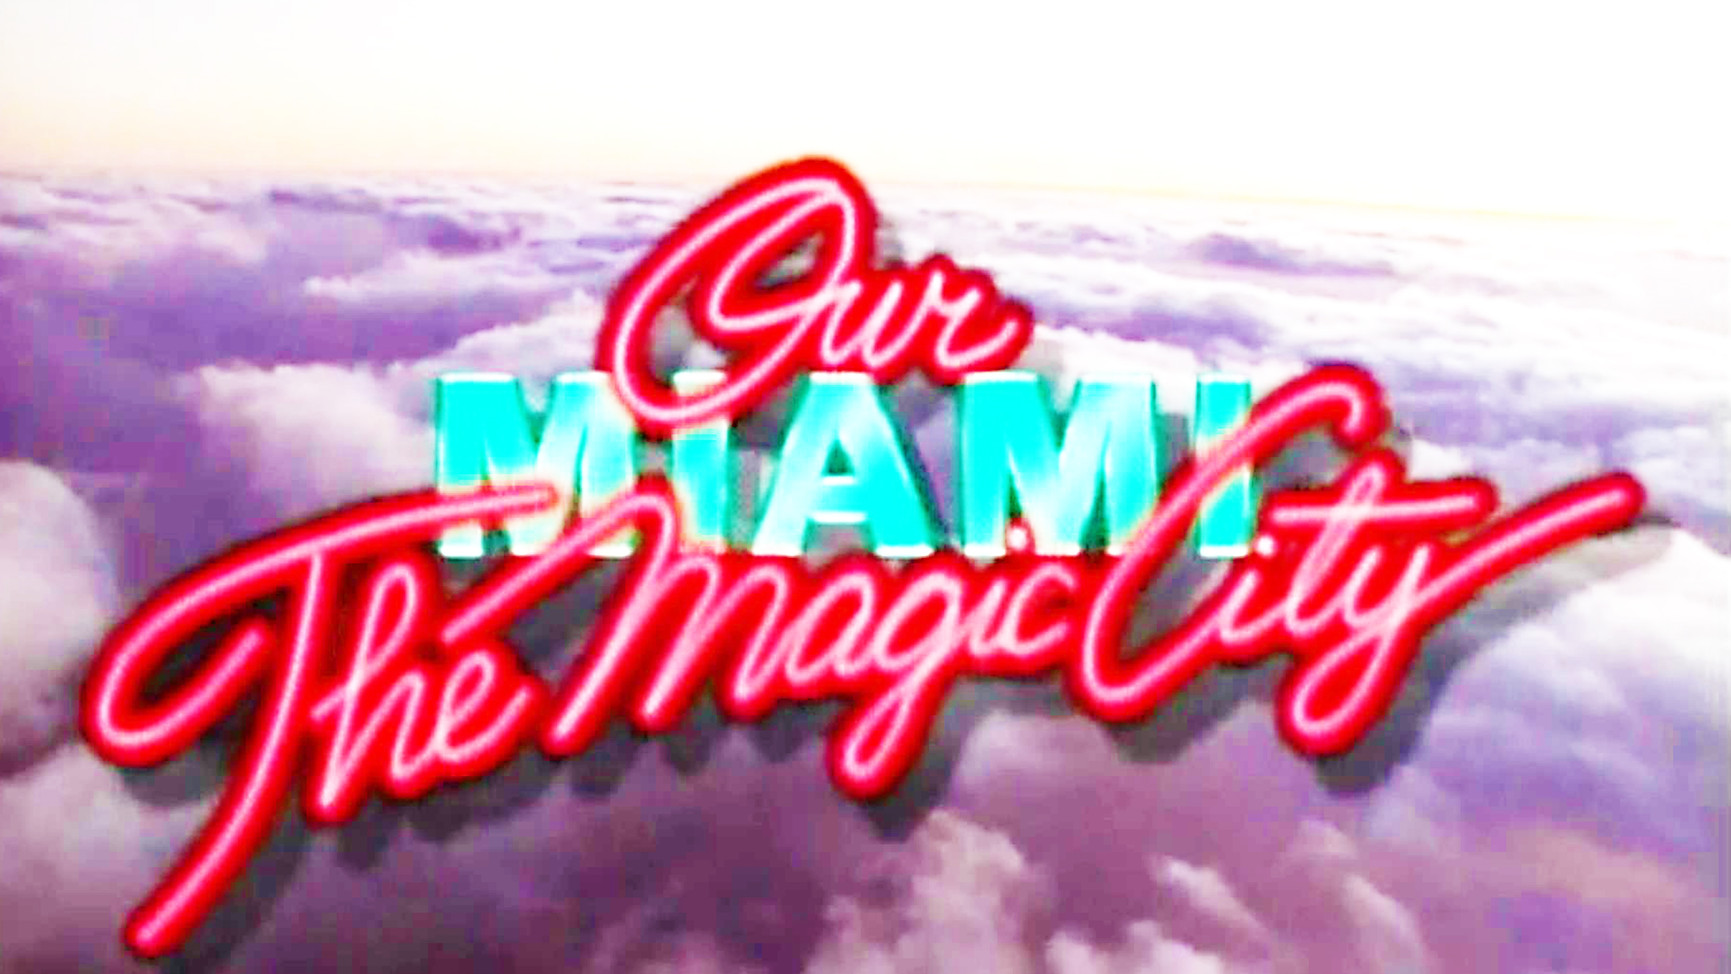 Our Miami - The Magic City.jpg